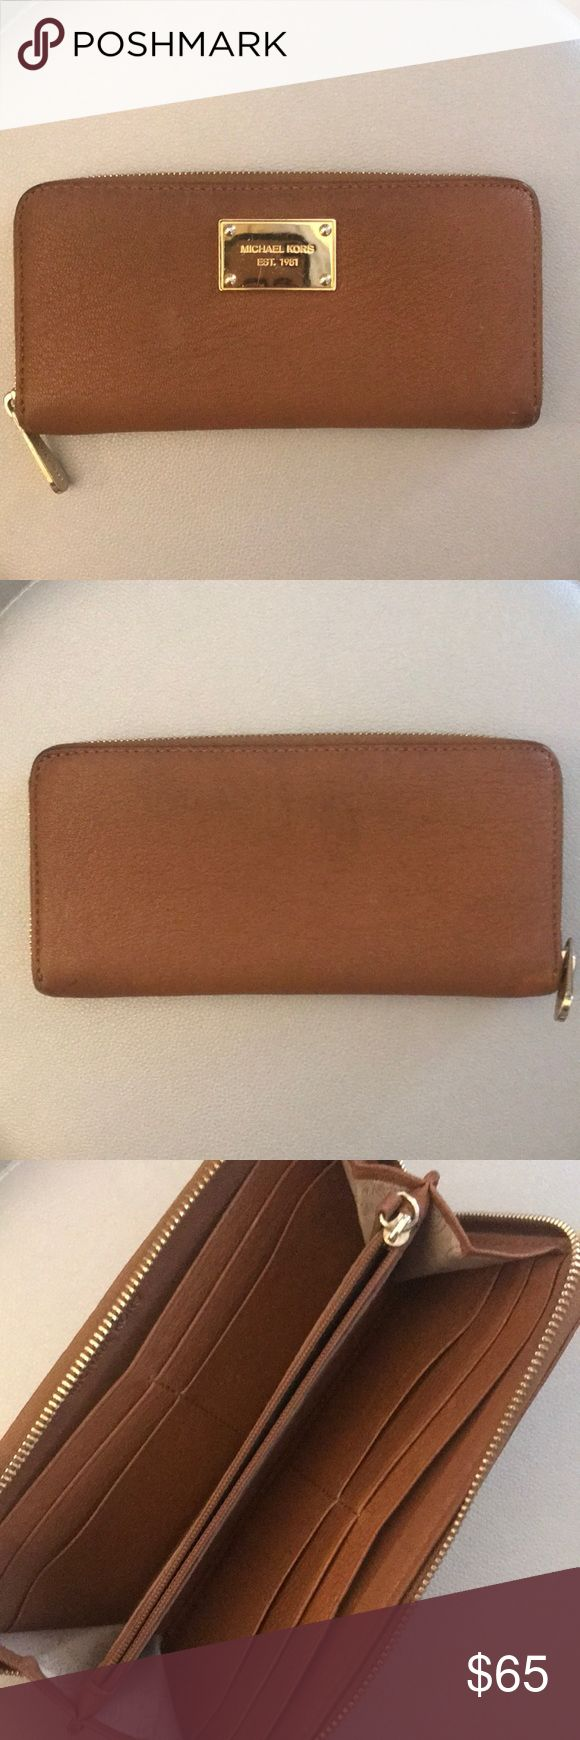 Michael Kors Wallet Michael Kors zip Continental wallet in the color luggage. Wallet features 10 card slots which can be easily doubled up. Slots for cash and coupons and a zippered change purse. MICHAEL Michael Kors Bags Wallets